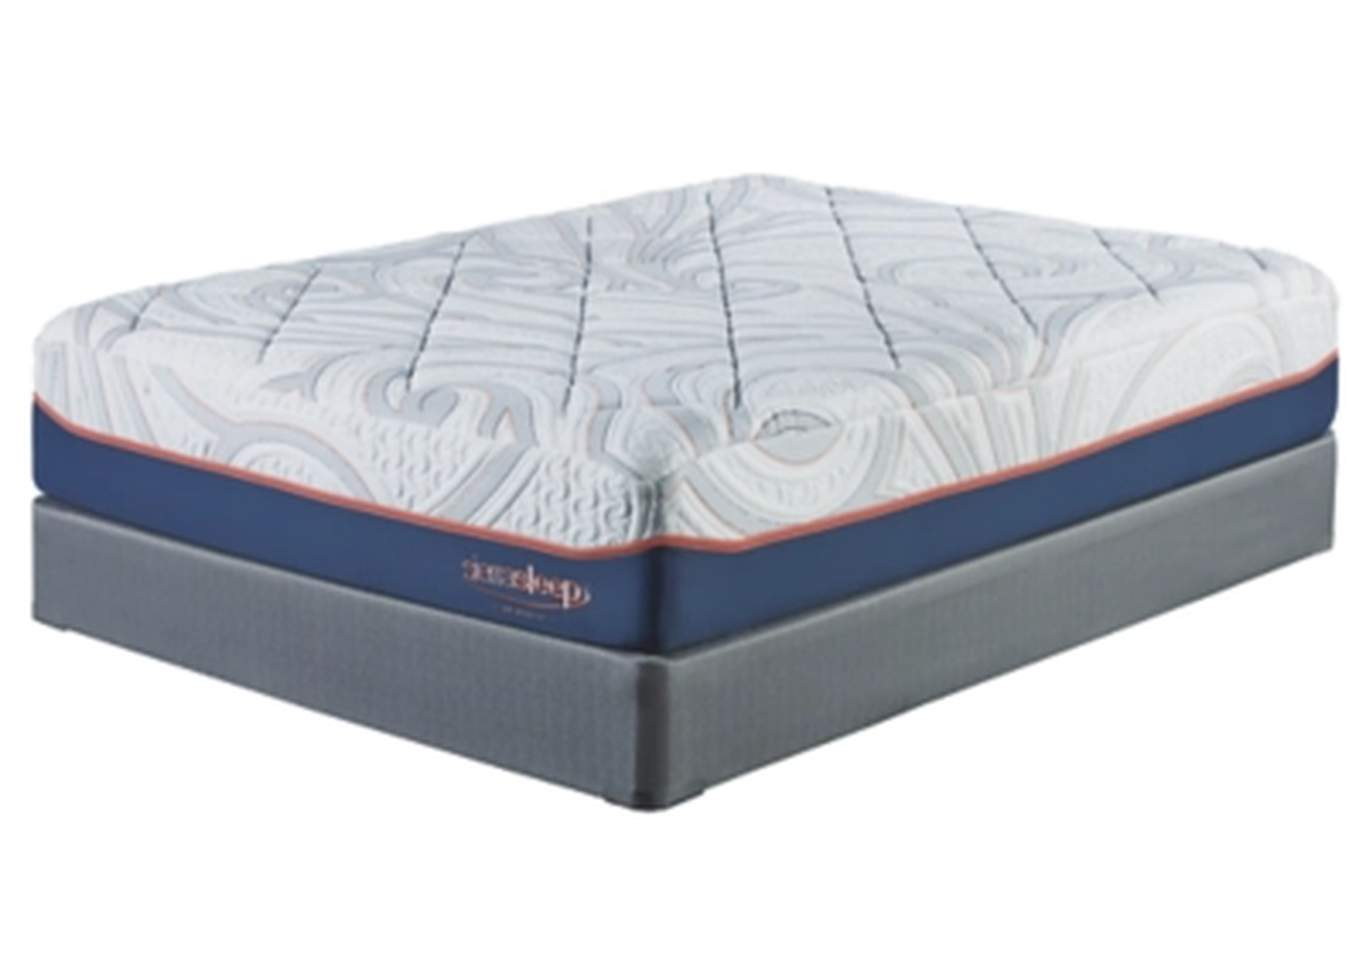 14 Inch MyGel White Queen Mattress w/Foundation,Sierra Sleep by Ashley